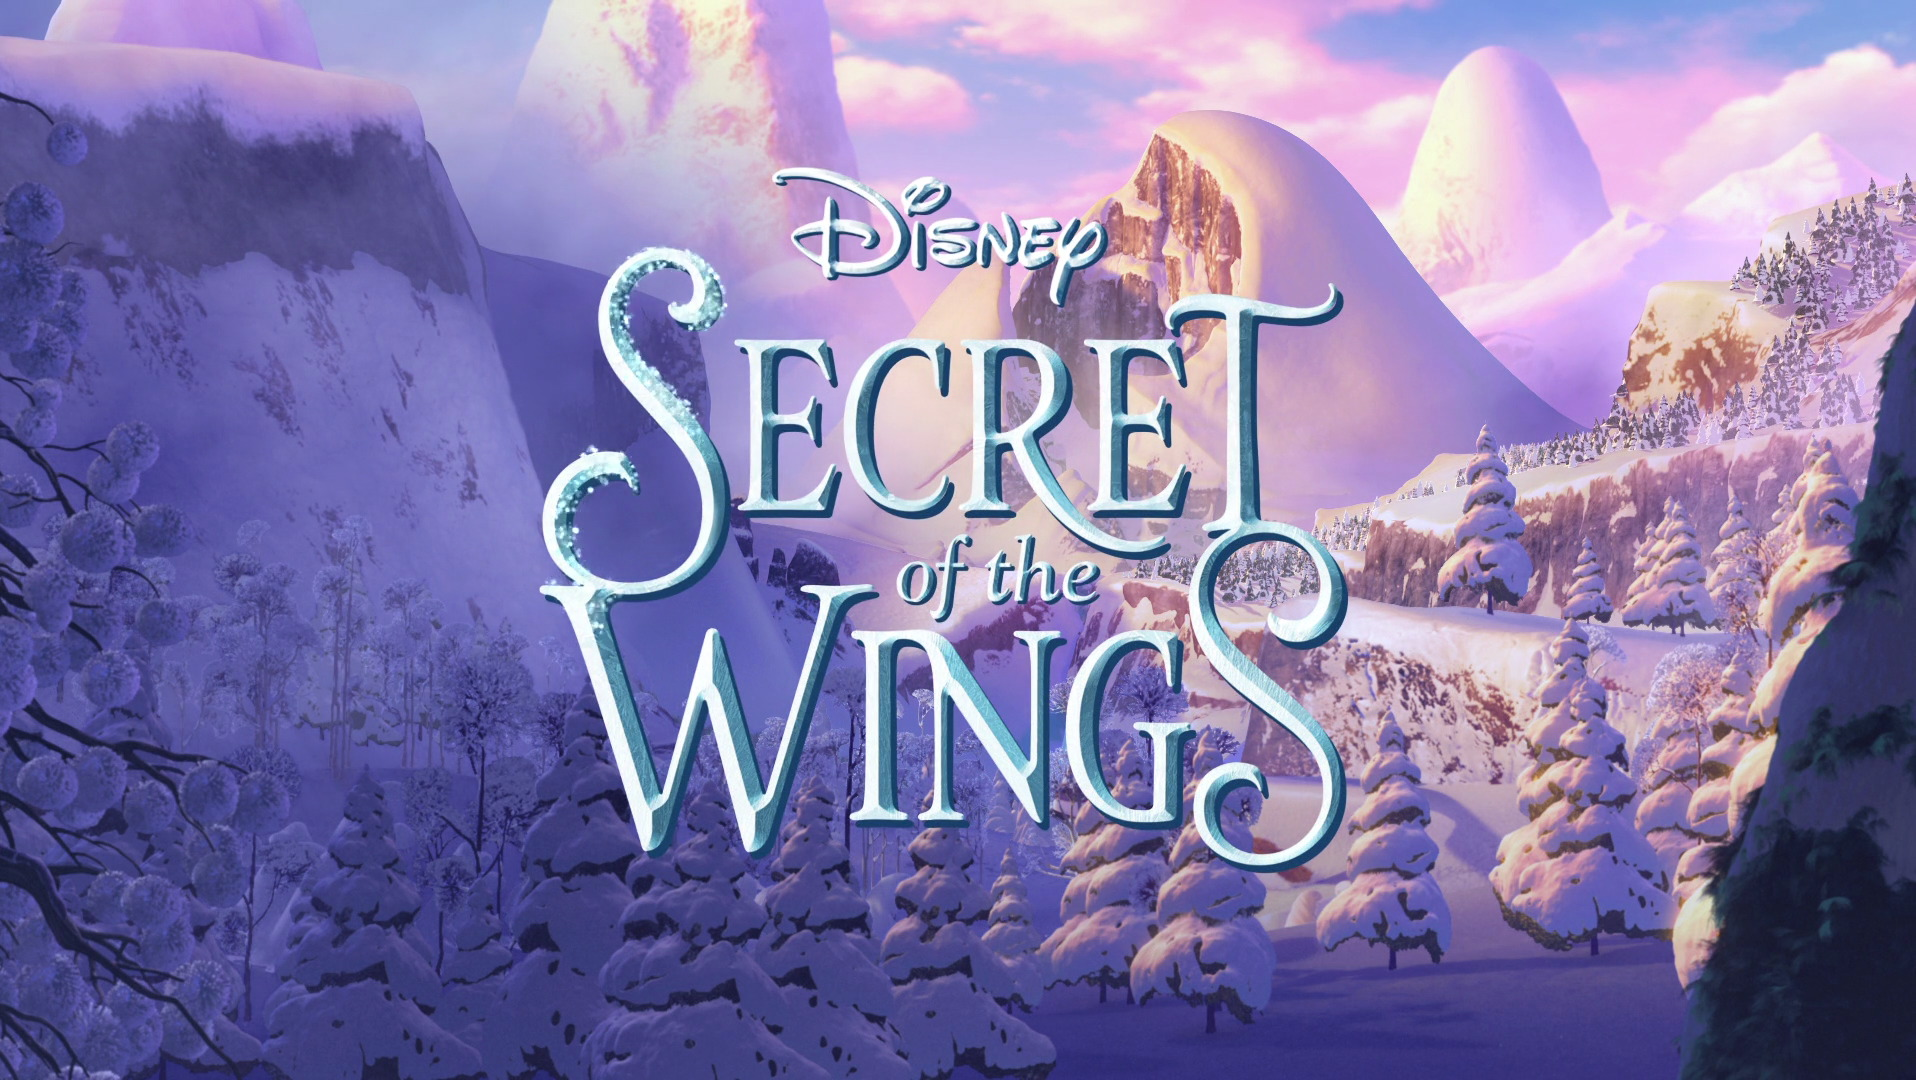 tinkerbell secret of the wings 2012 full movie free download